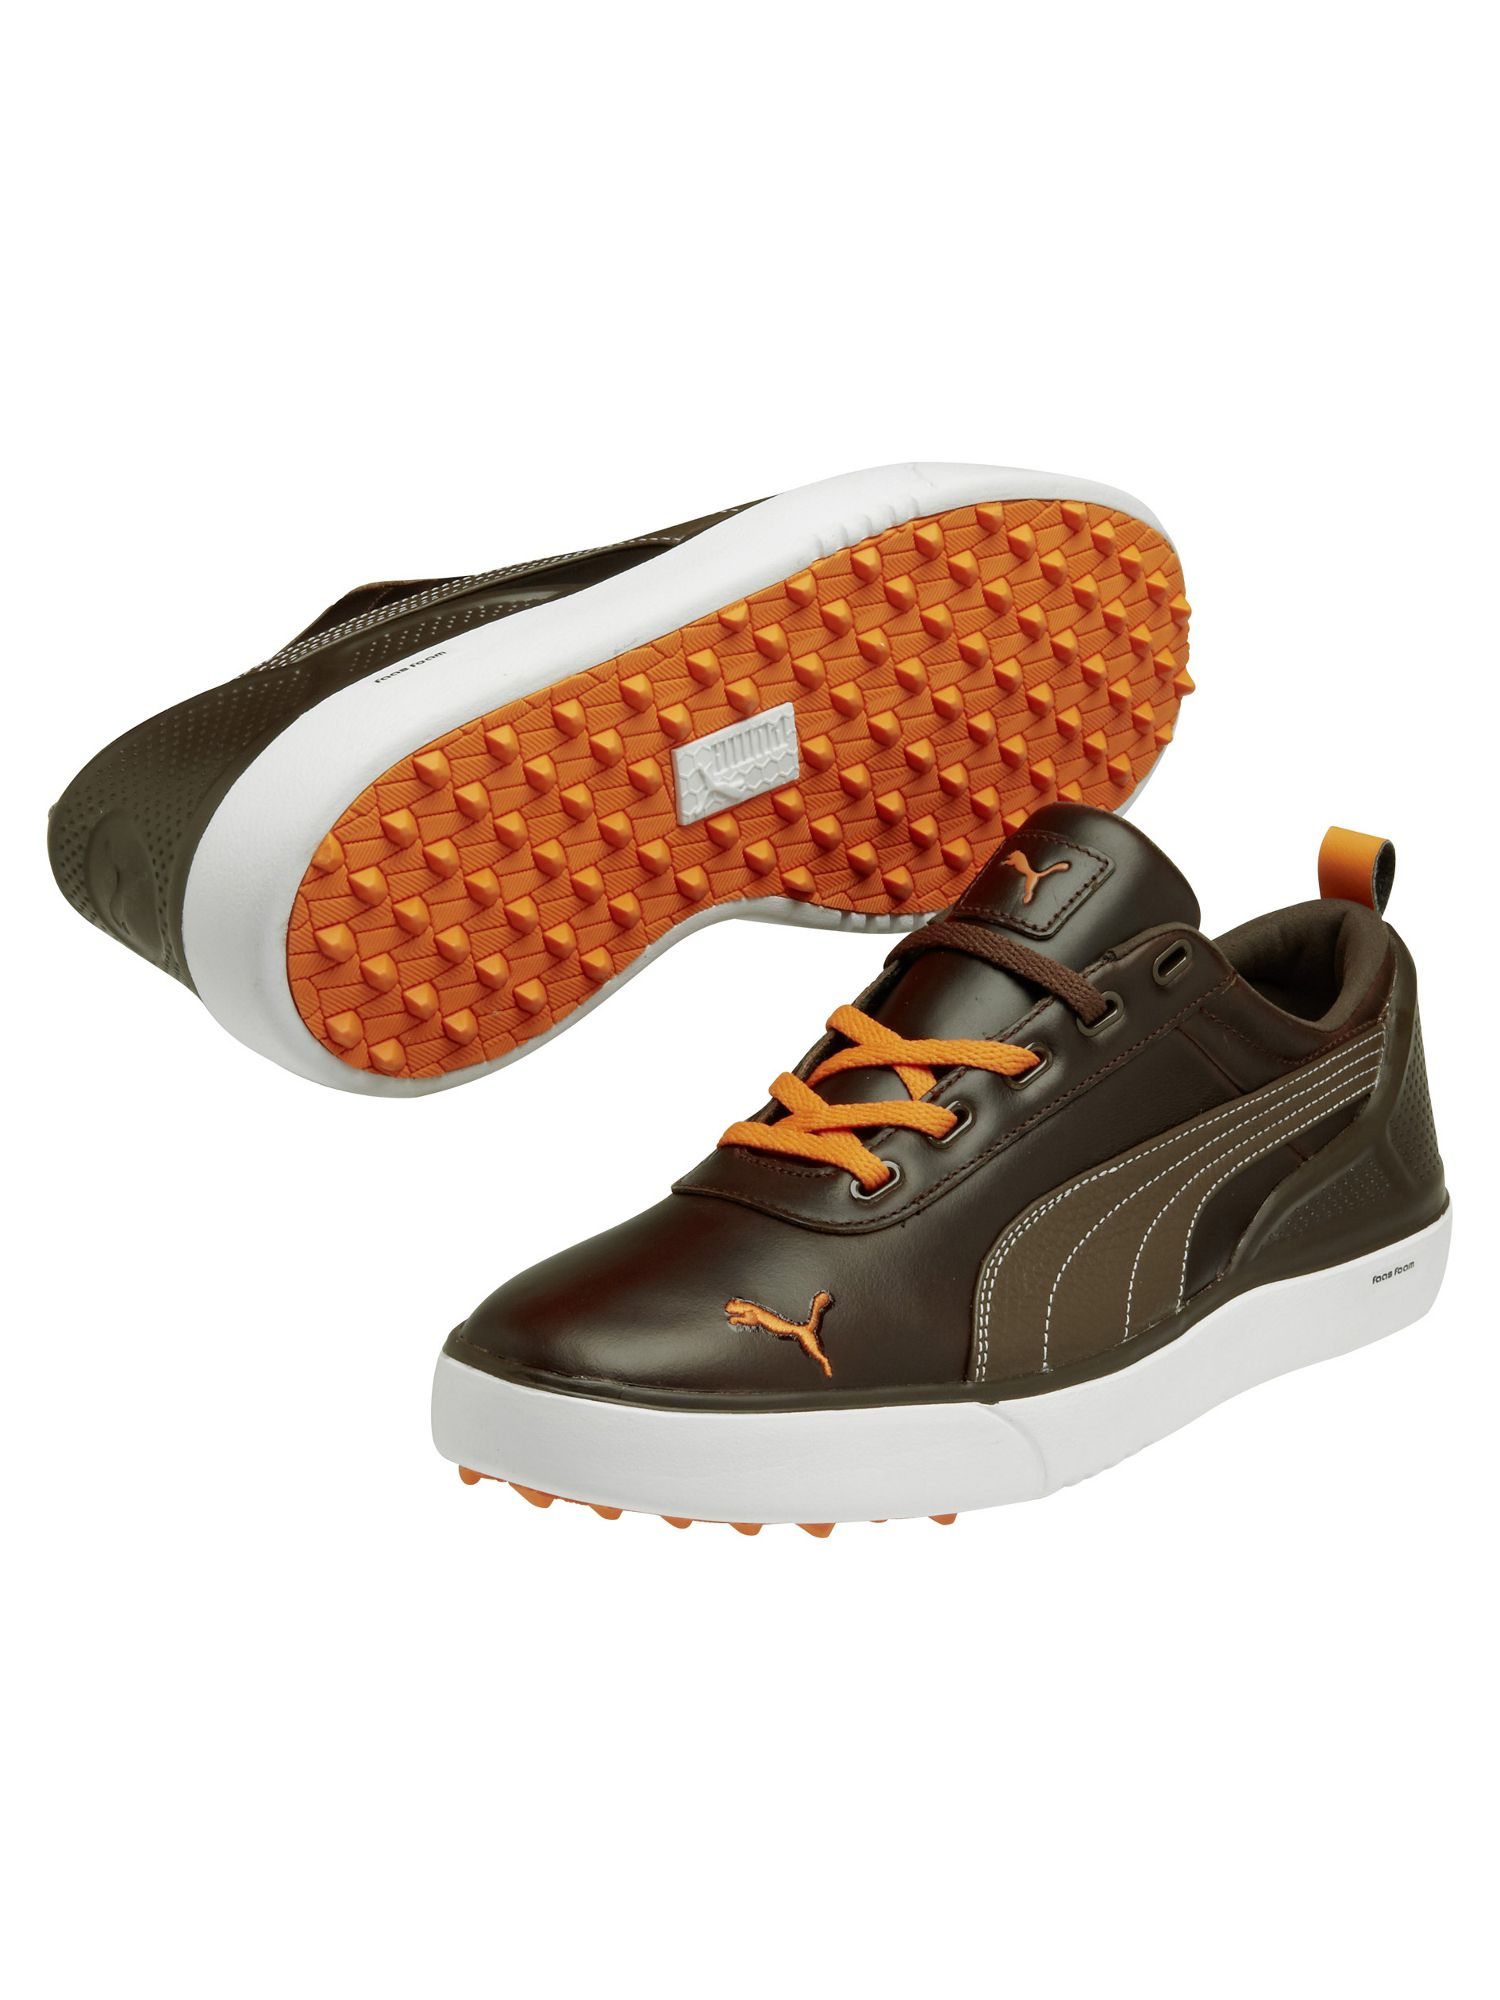 Monolite golf shoes